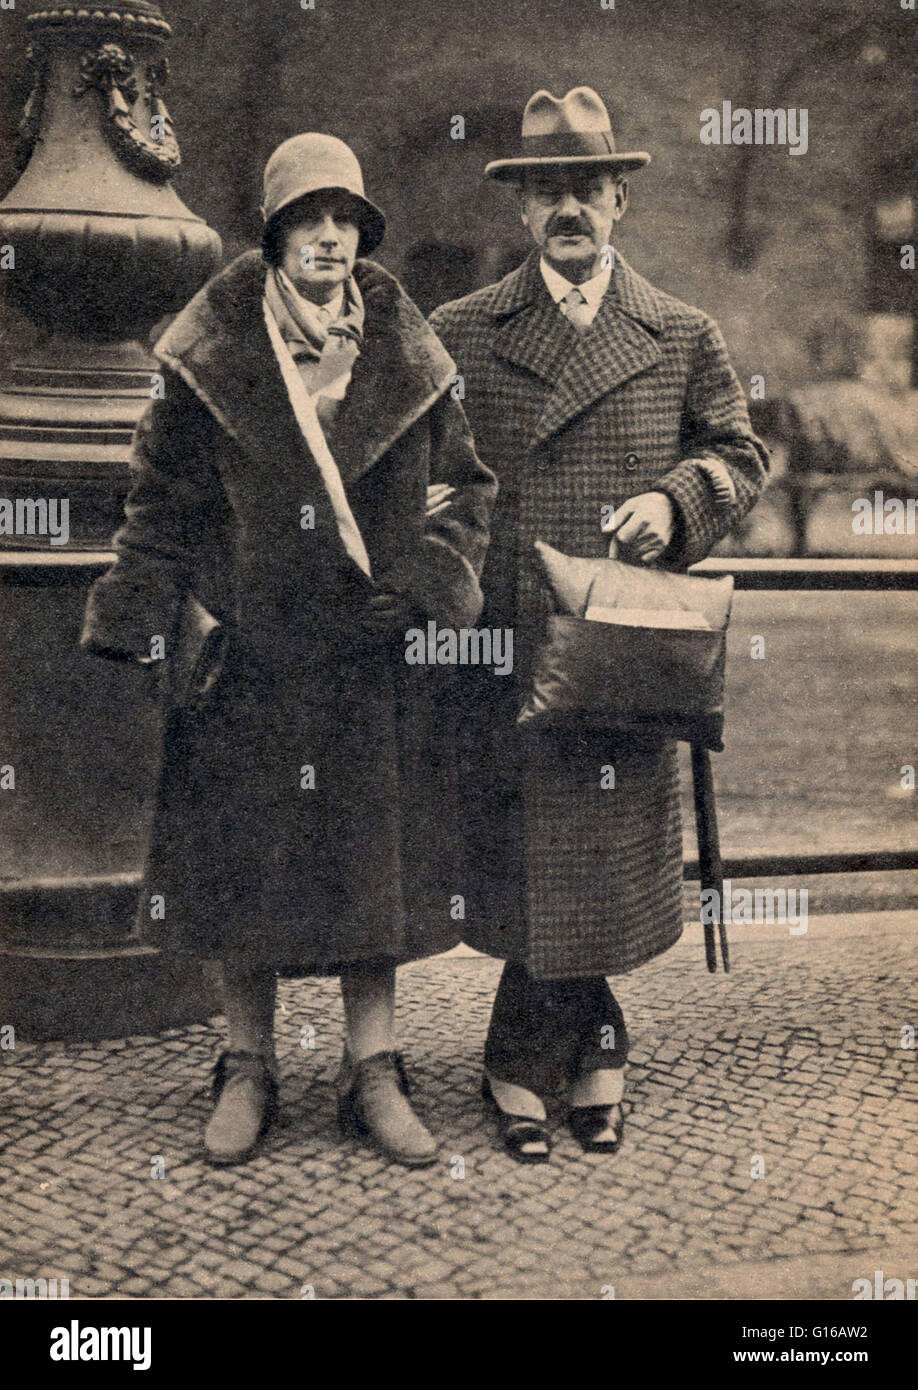 Photograph of Katia and Thomas Mann, Berlin, dated 1929. Thomas Mann (June 6, 1875 - August 12, 1955) was a German - Stock Image